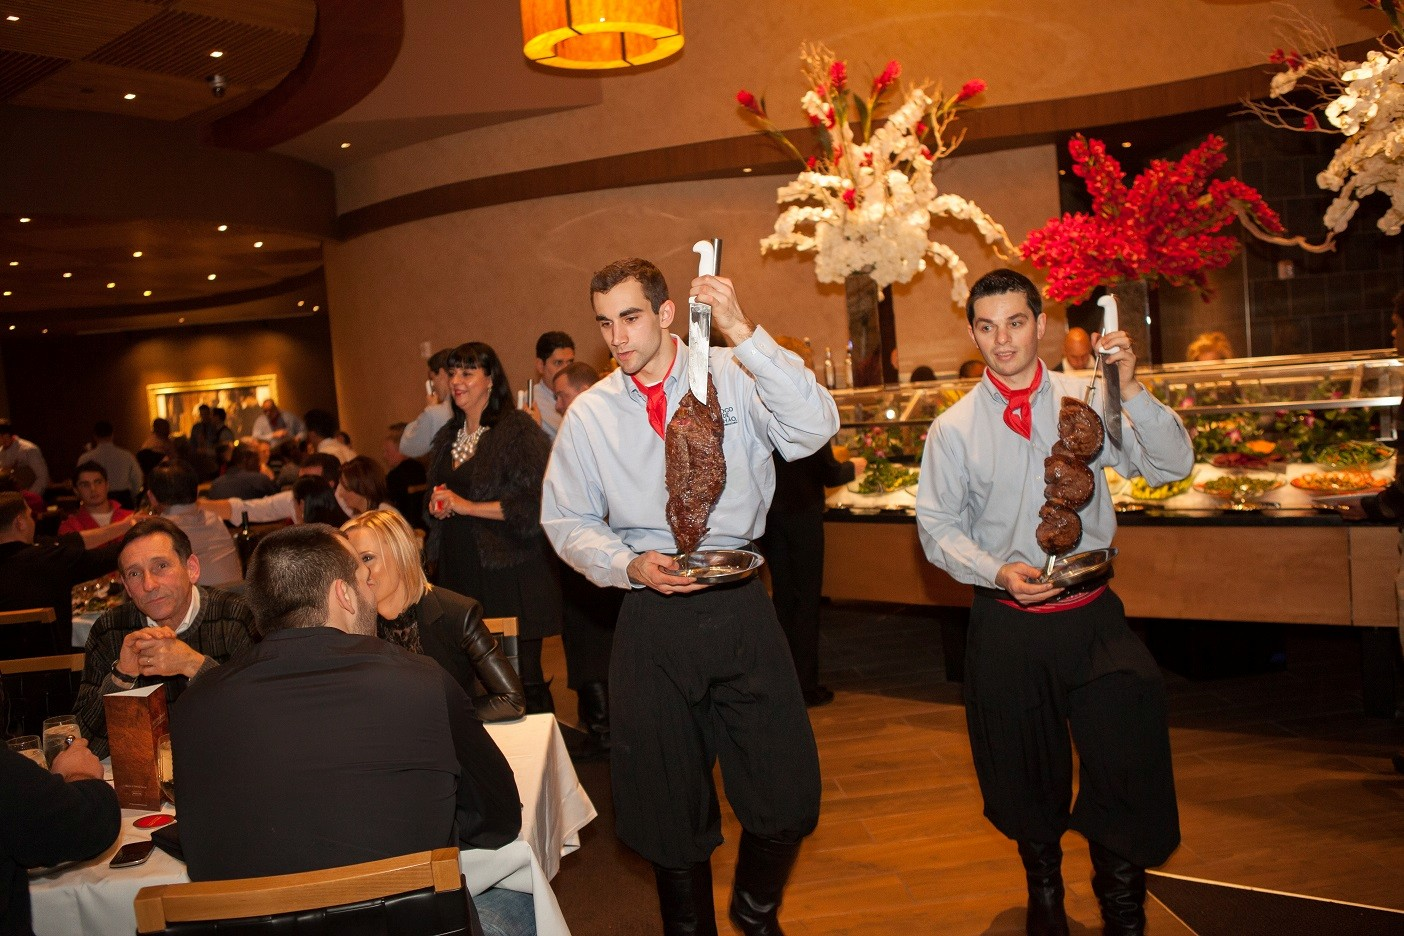 fogo de chao entry into hawaii essay We are chefs born into the centuries-old grilling tradition of bar fogo a new way to e the story of fogo de chão began in the mountainous countryside of rio.